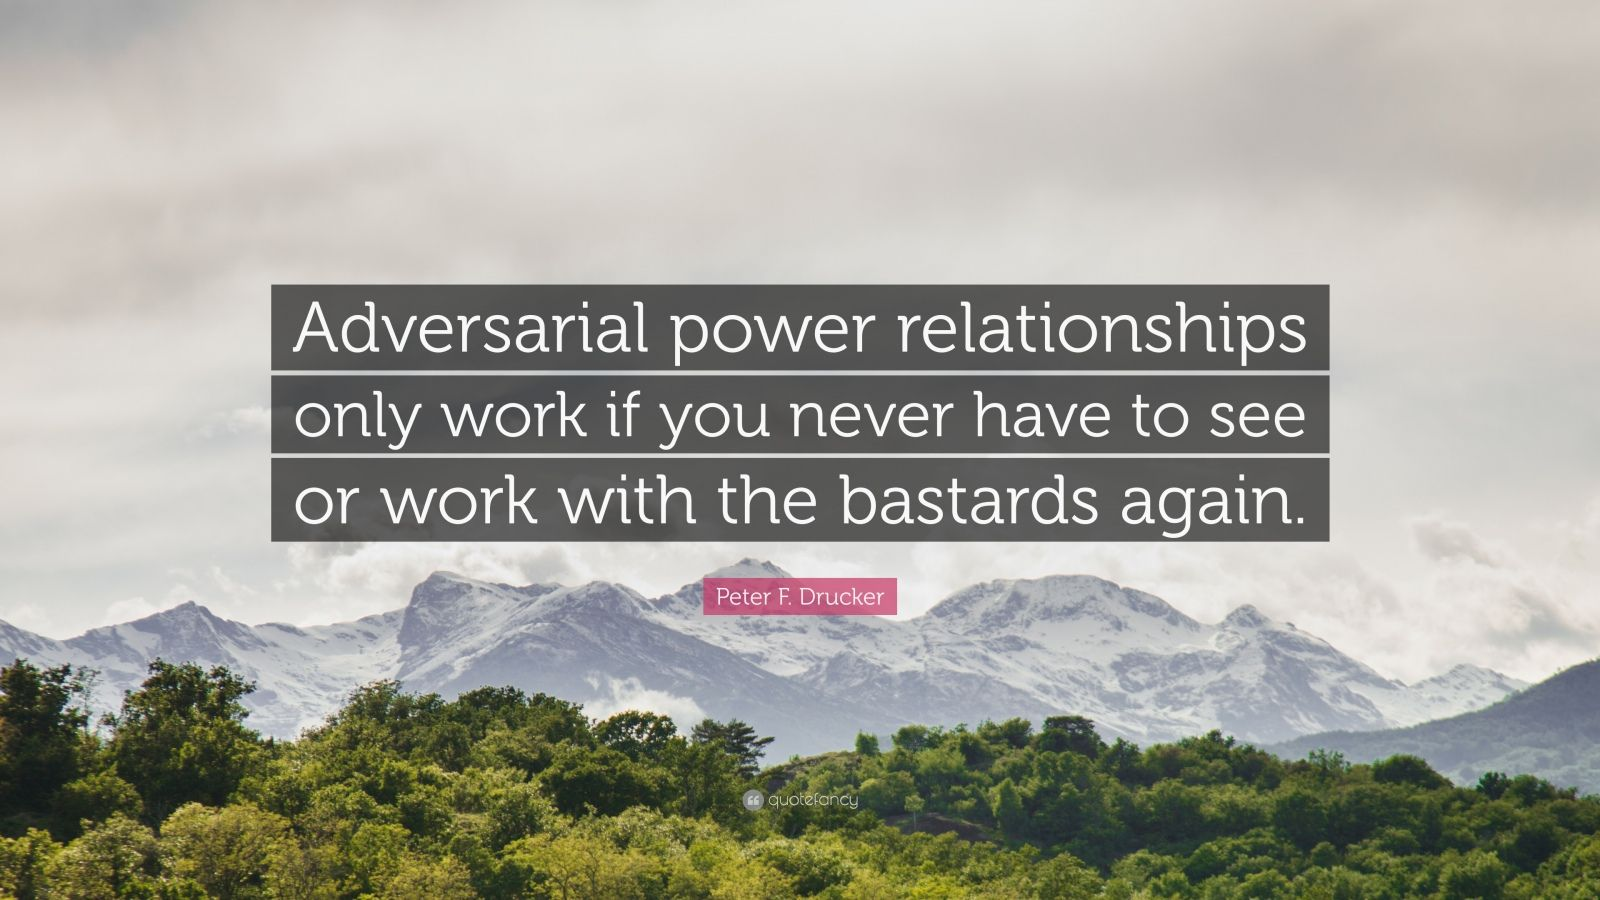 """Peter F. Drucker Quote: """"Adversarial power relationships only work if you never have to see or work with the bastards again."""""""